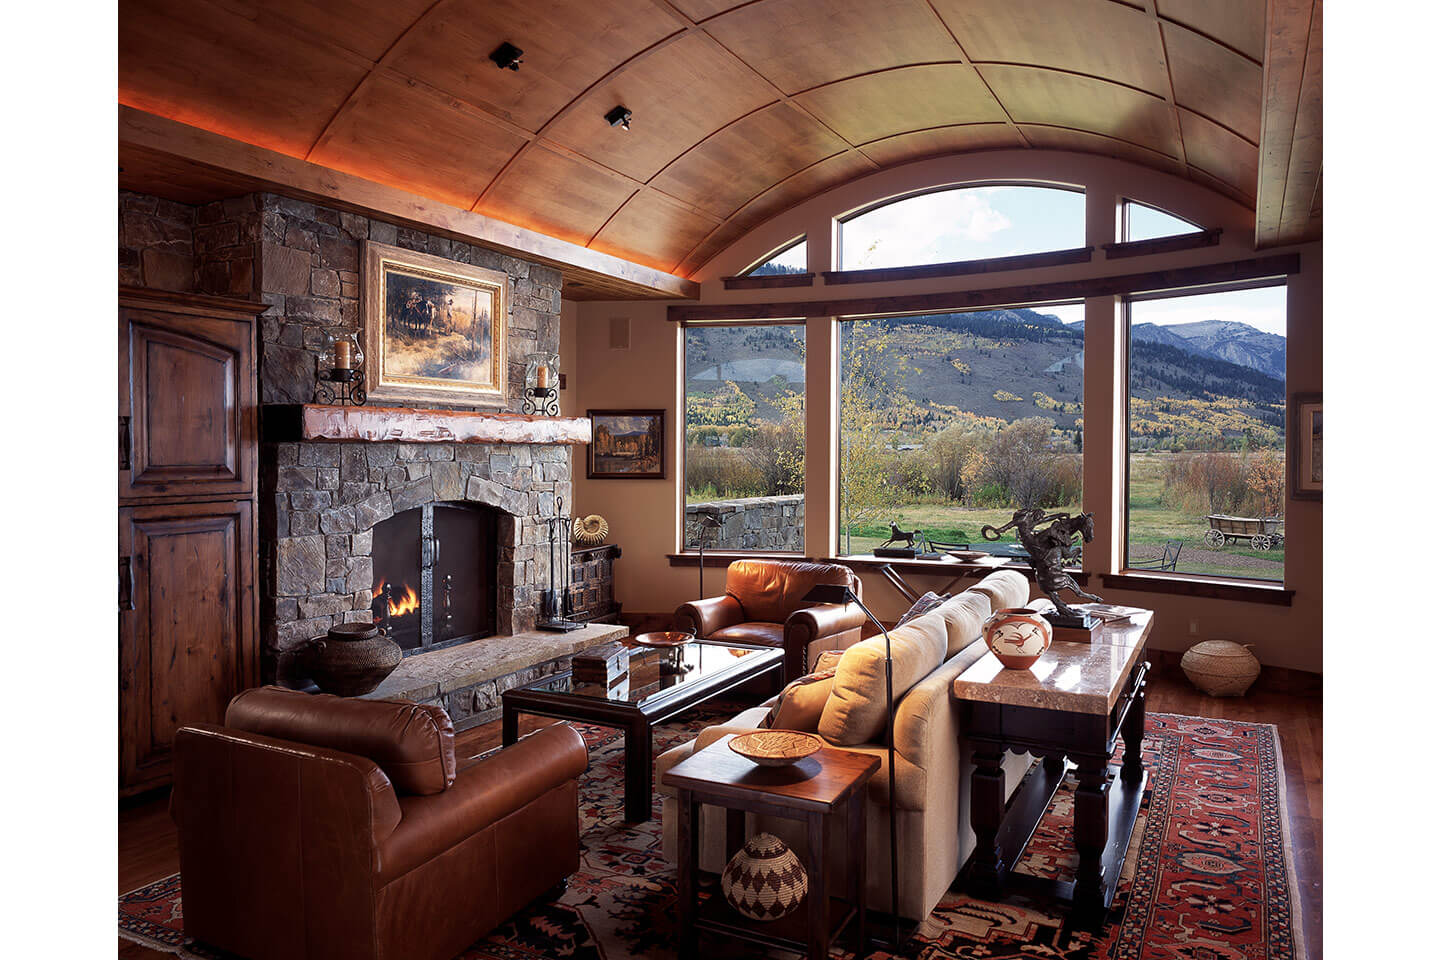 Living room with barrel vaulted ceiling and fireplace